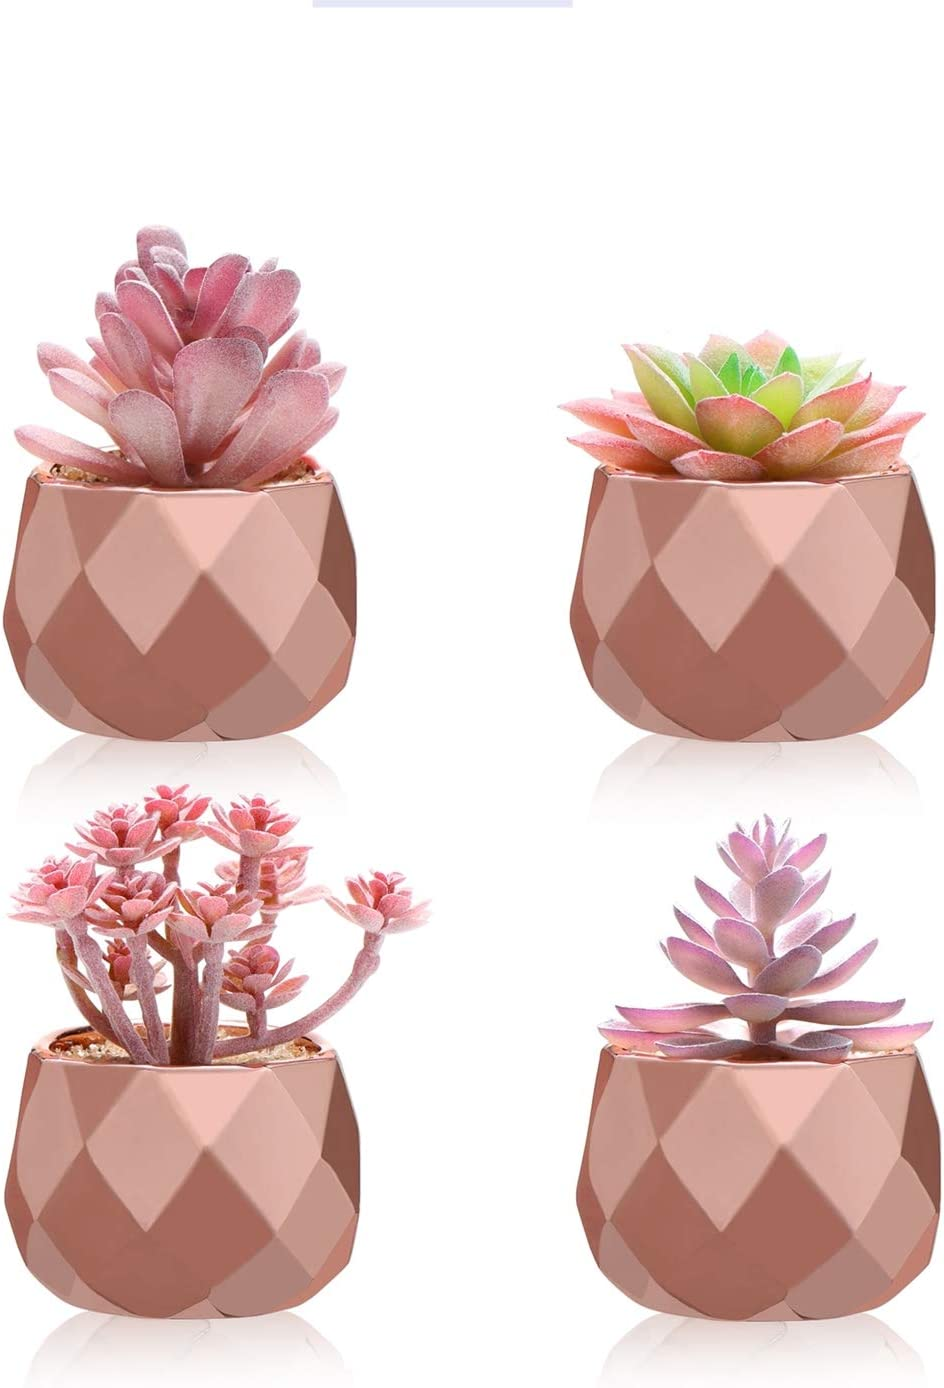 CADNLY Artificial Succulents Plants in Pots - Rose Gold Room Decor Desk Accessories for Women Office - Small Fake Plant Decor for Bedroom Bathroom Living Room Home Decorations Set of 4